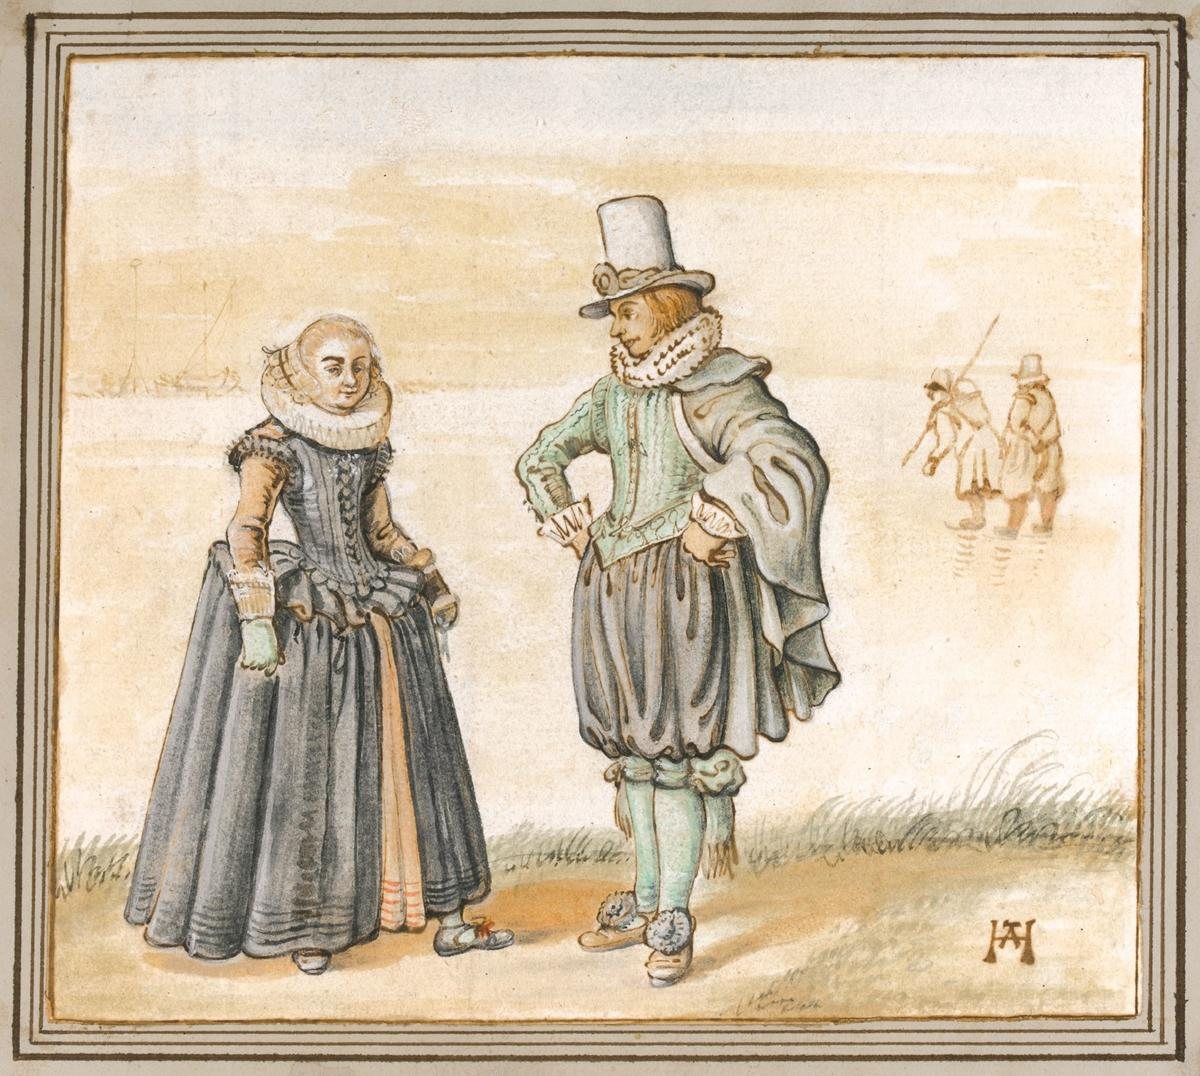 Avercamp_Winter Scene, A Man And Woman Standing On Ice